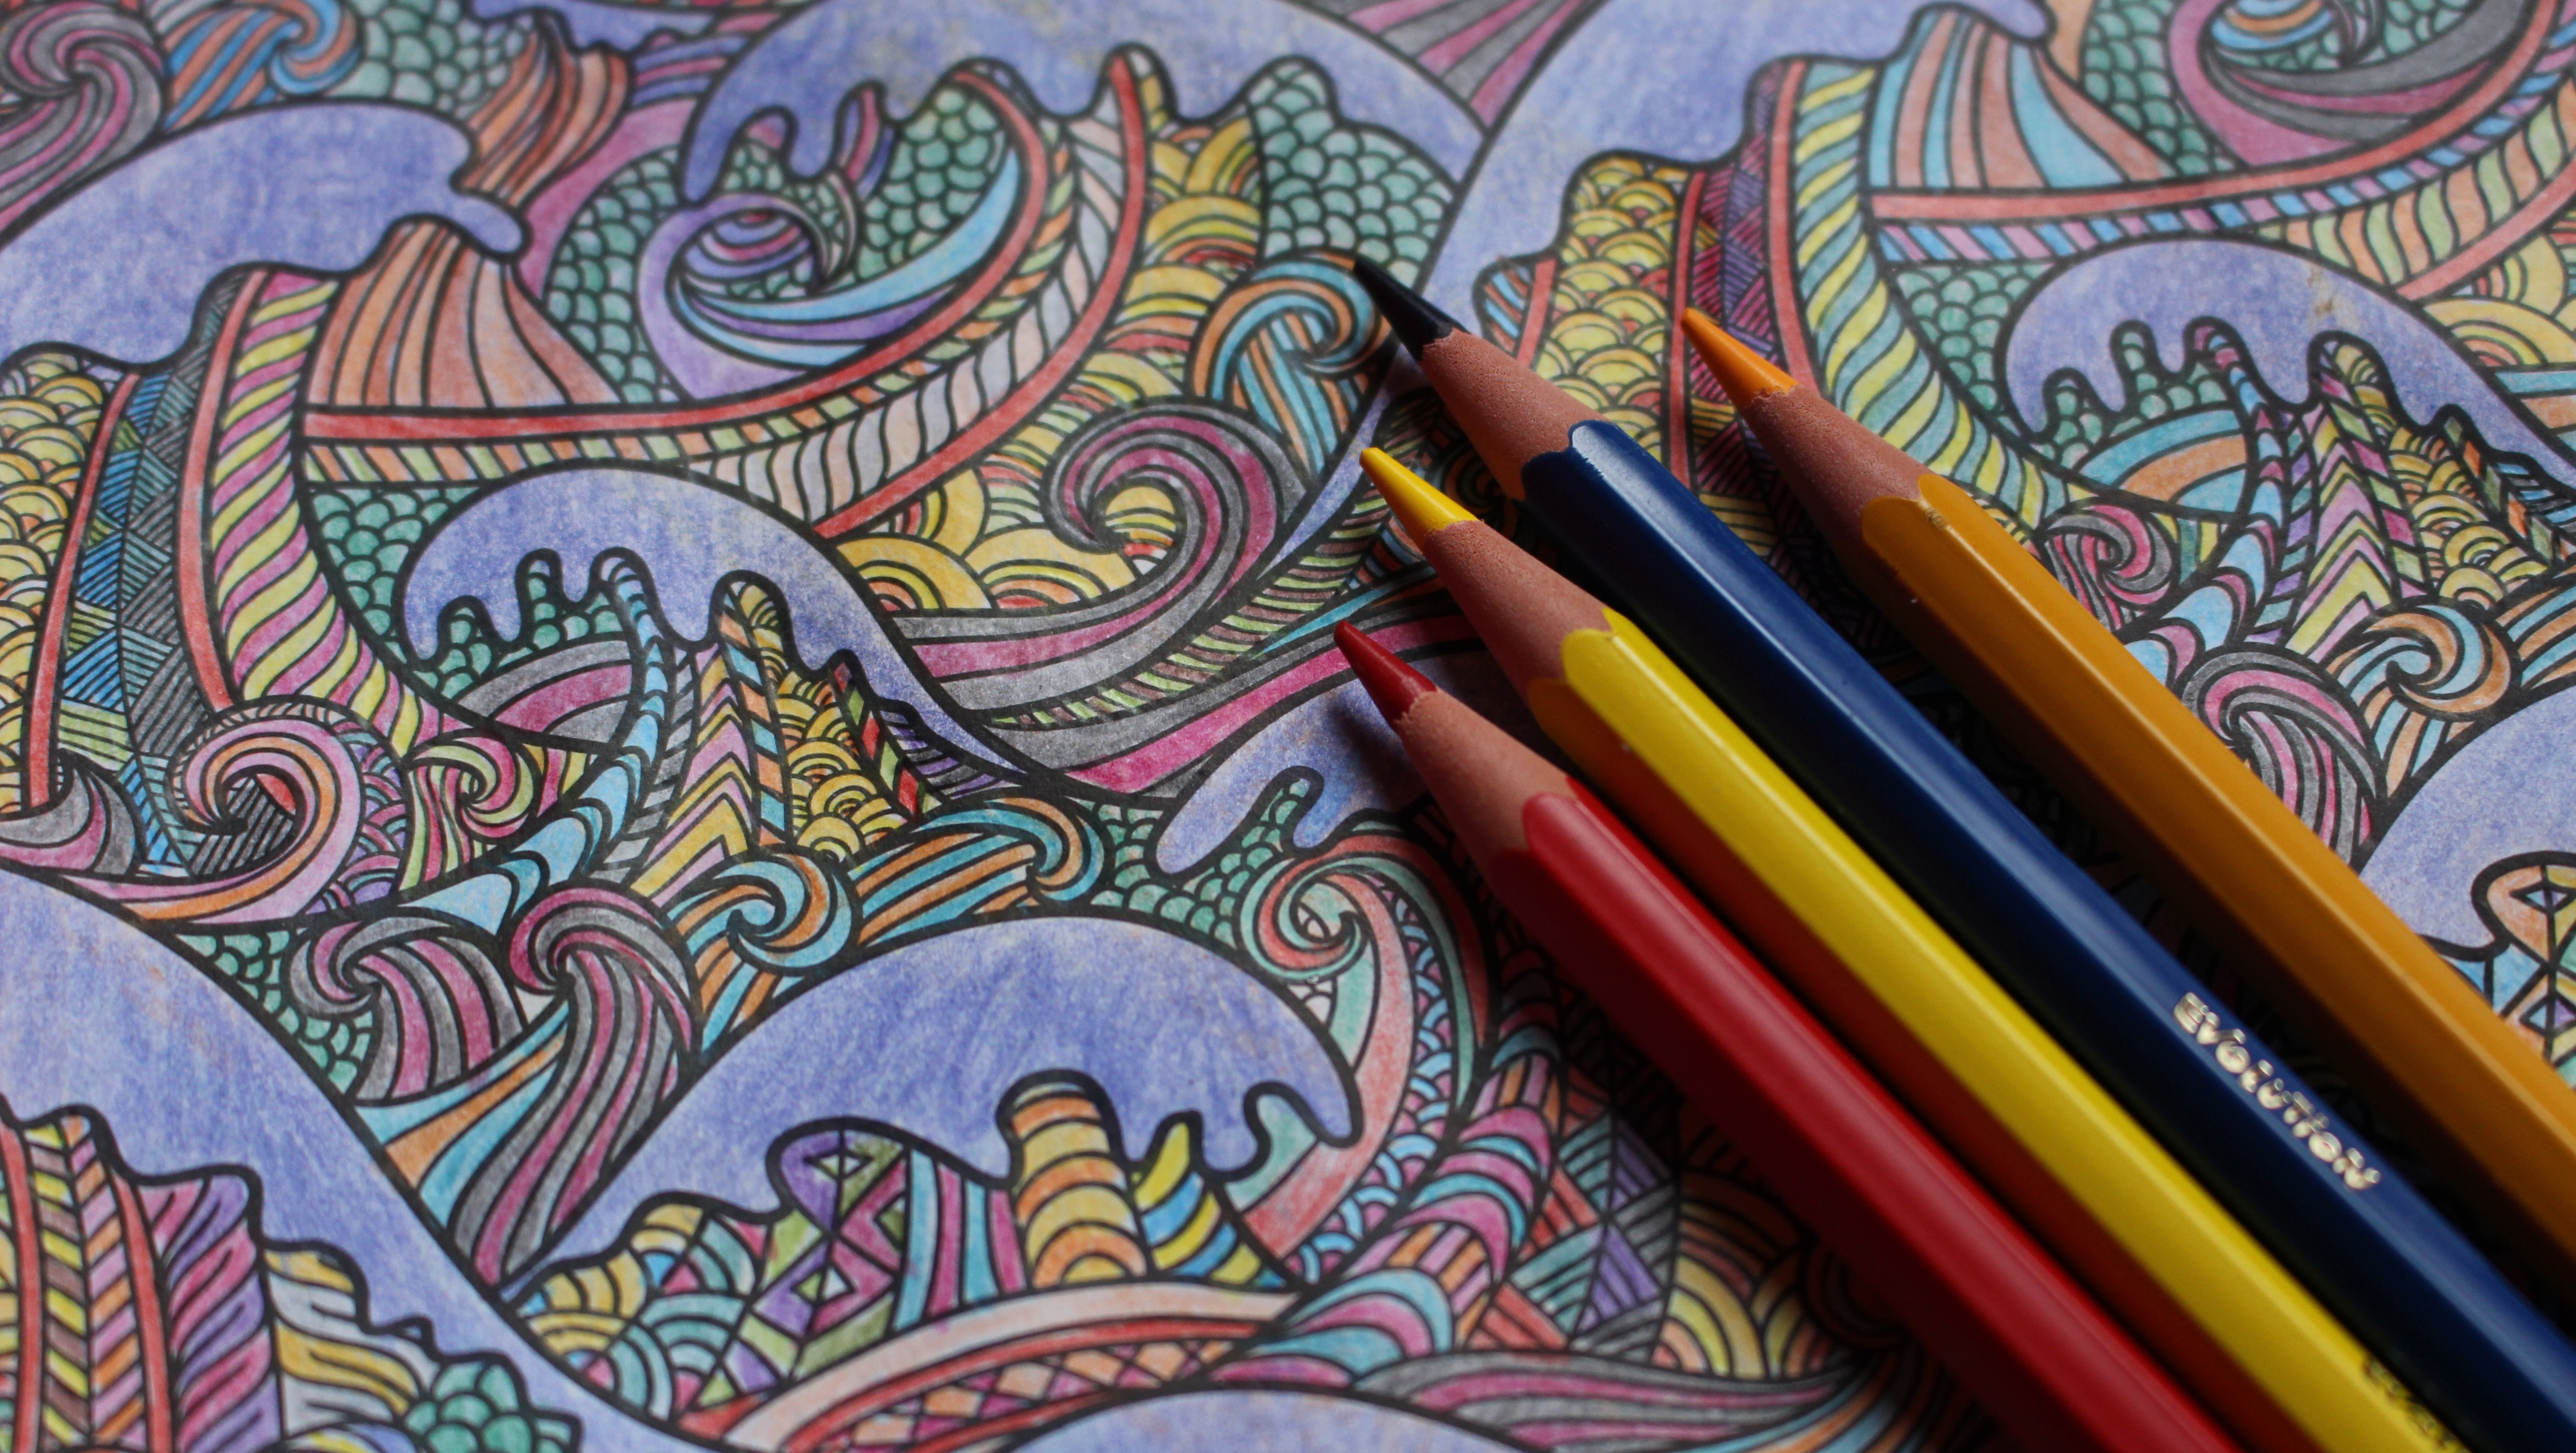 If you want to be a bestselling author, make an adult coloring book ...